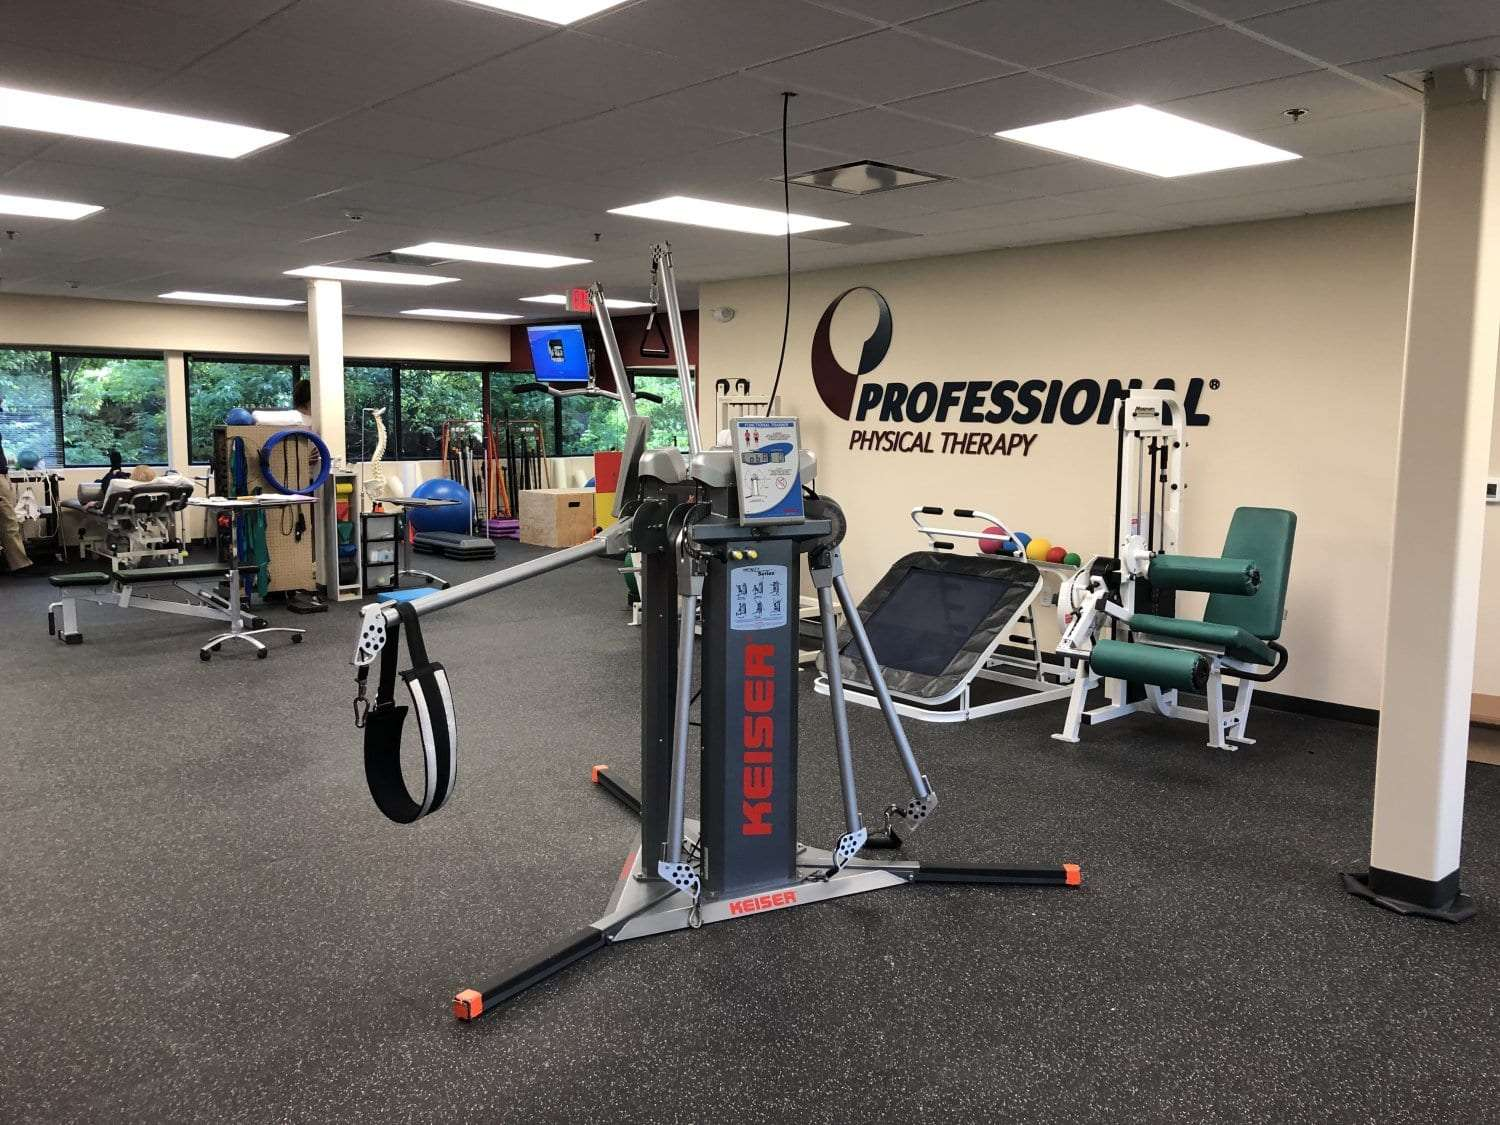 An image of exercise equipment used in physical therapy clinic in Randolph, New Jersey.